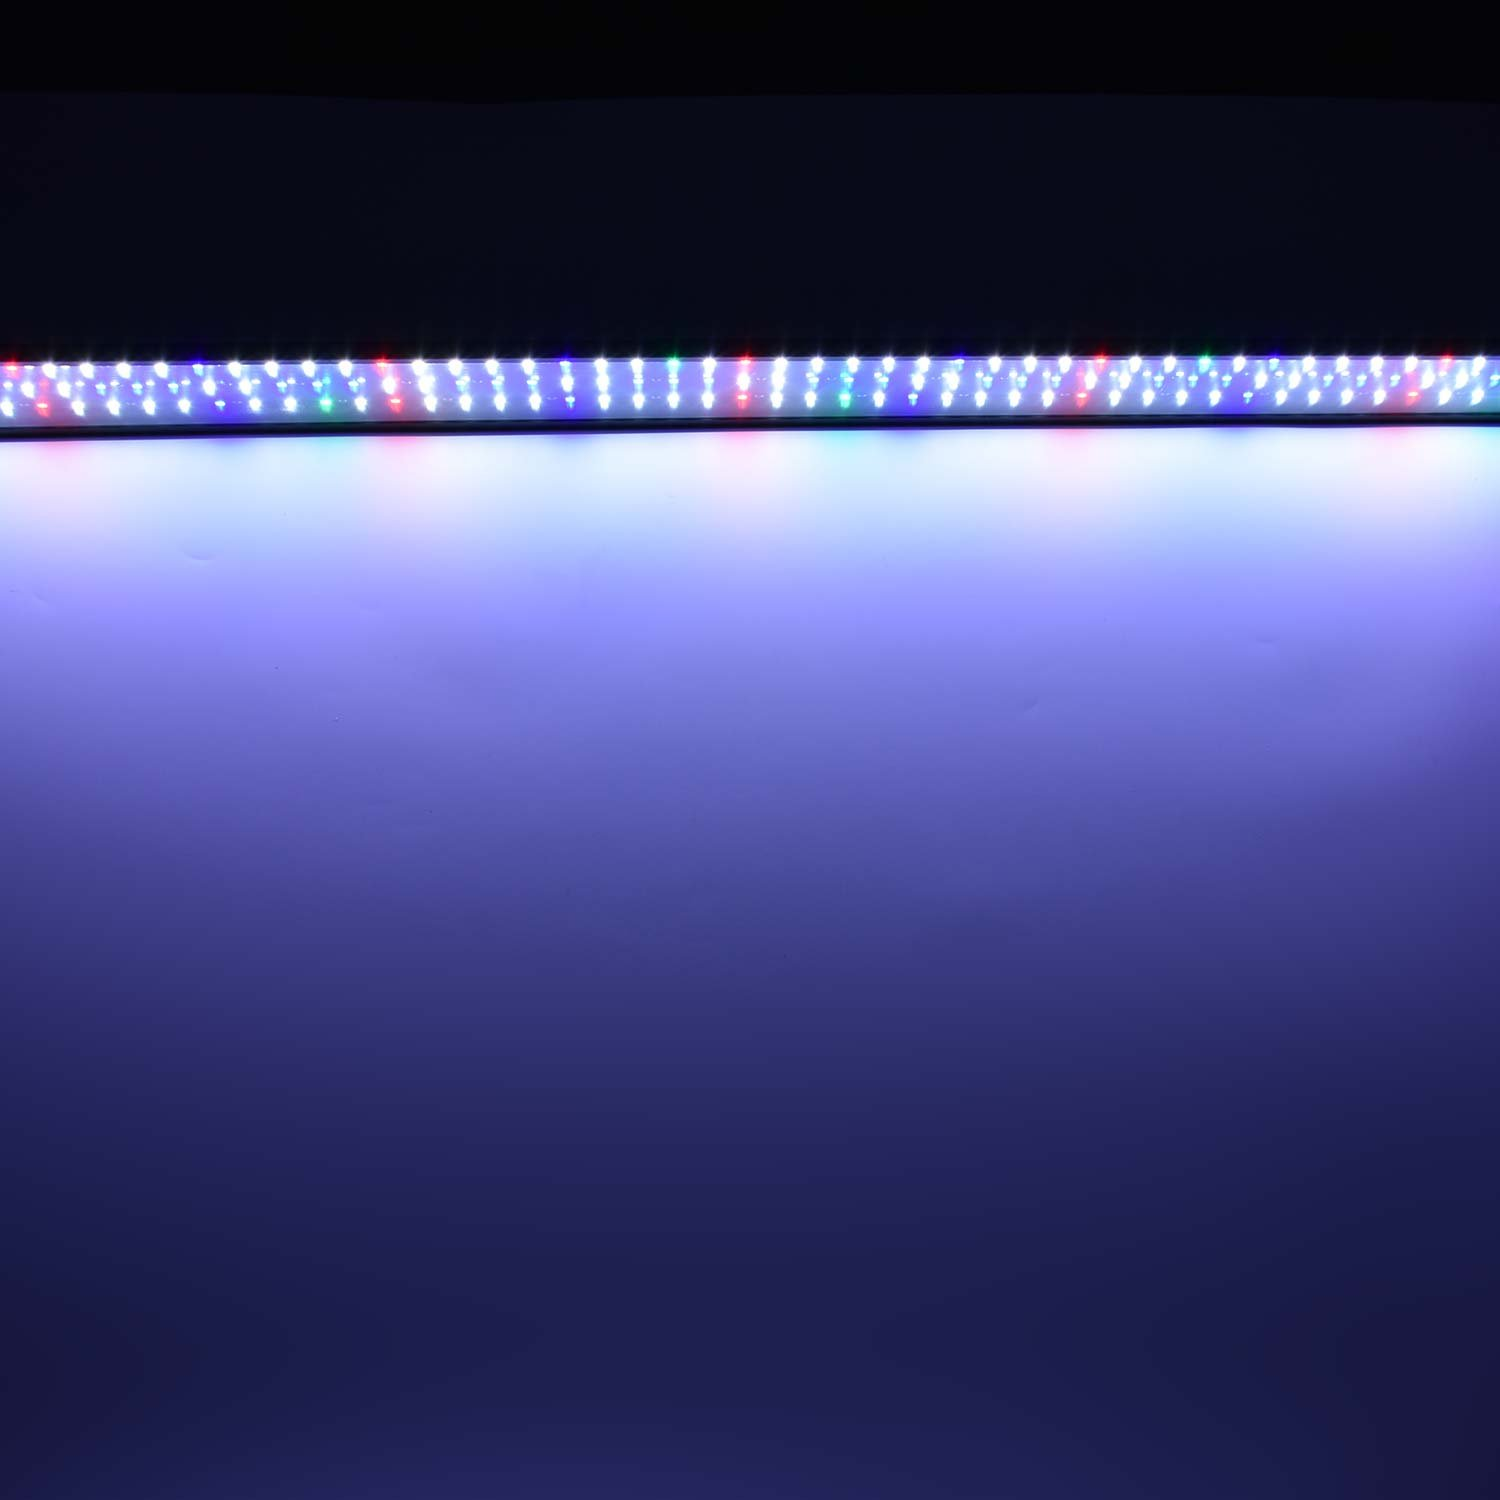 Super Bright LED Aquarium Light Fits Coral Fish Plant Saltwater Freshwater Aquariums in 36-47inch in Length 32W Full Spectrum Fish Tank Hood Lighting with Blue Green Red and White LEDs